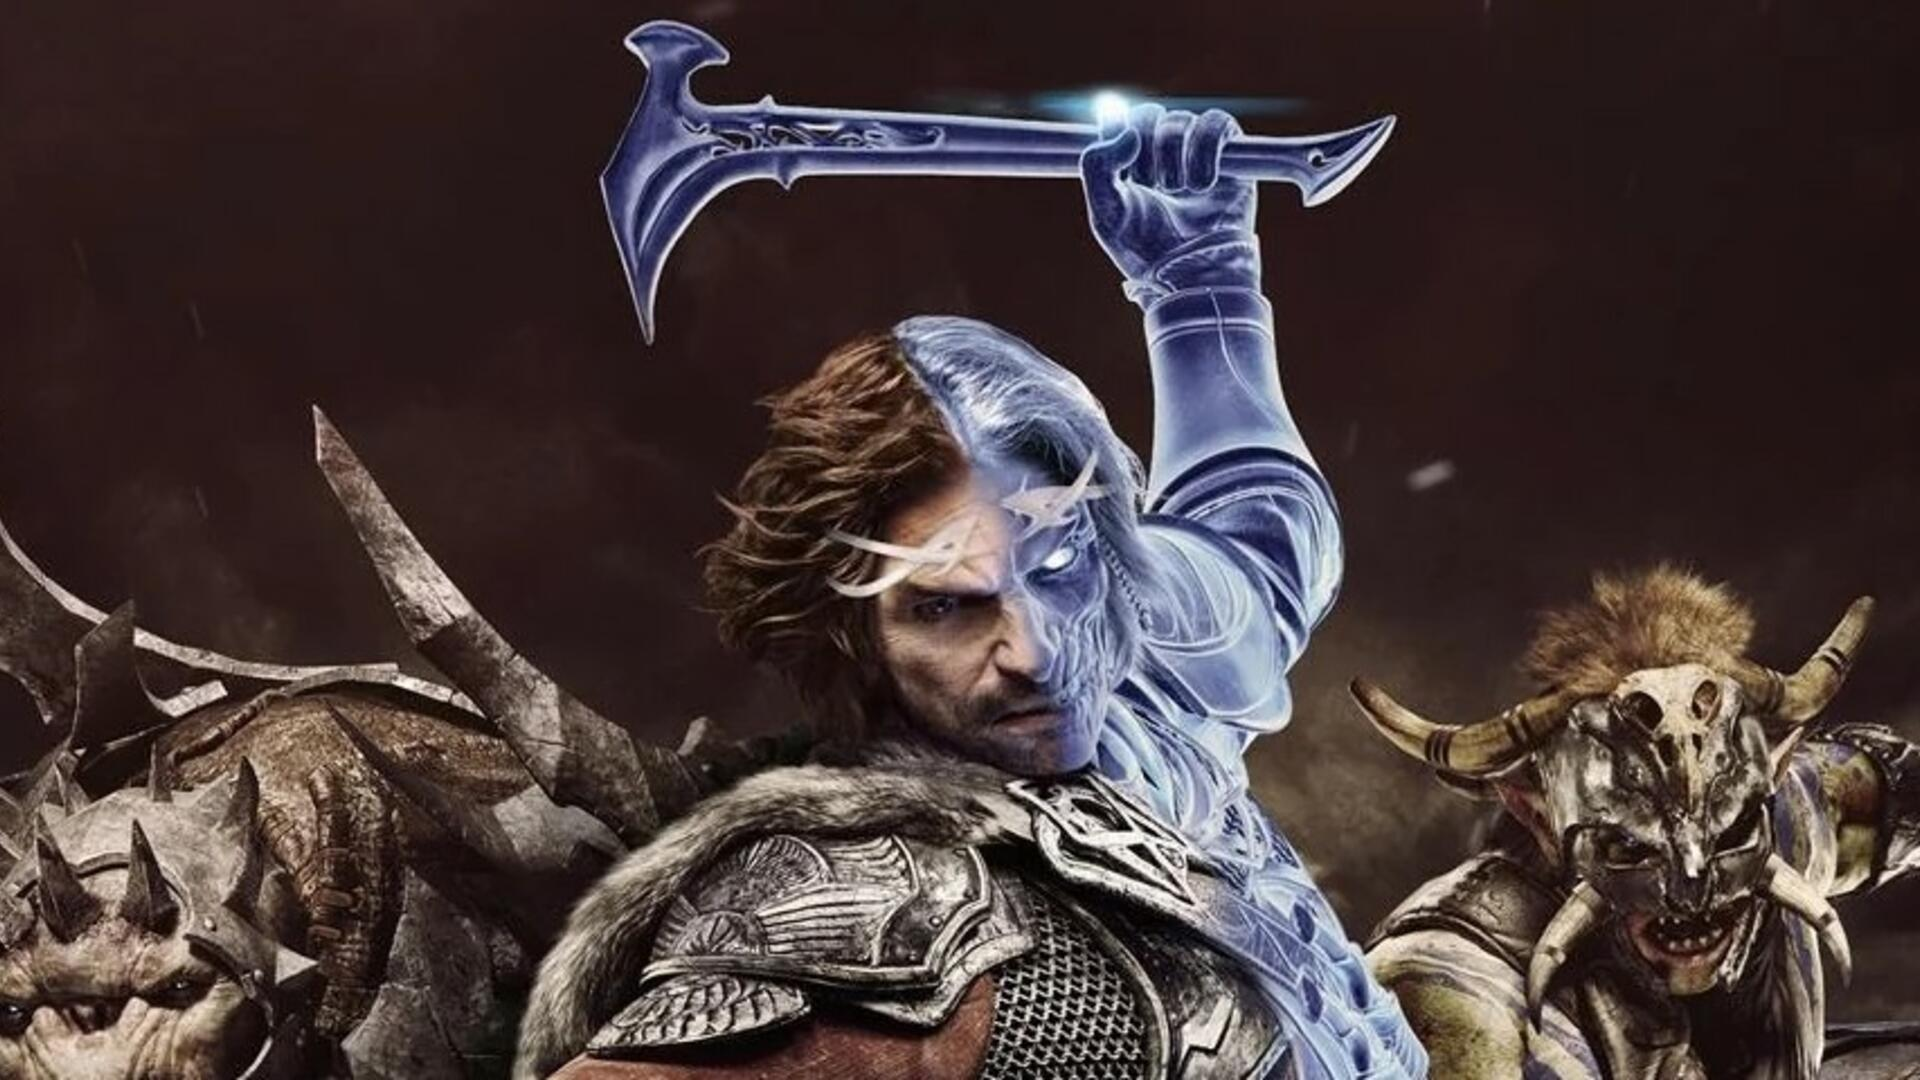 Middle Earth: Shadow of War - Review Roundup, Release Date, Market, Ranked Online, Shelob, Gameplay, Pre-order, Endgame Mode, Nemesis System, Mounts - Everything We Know